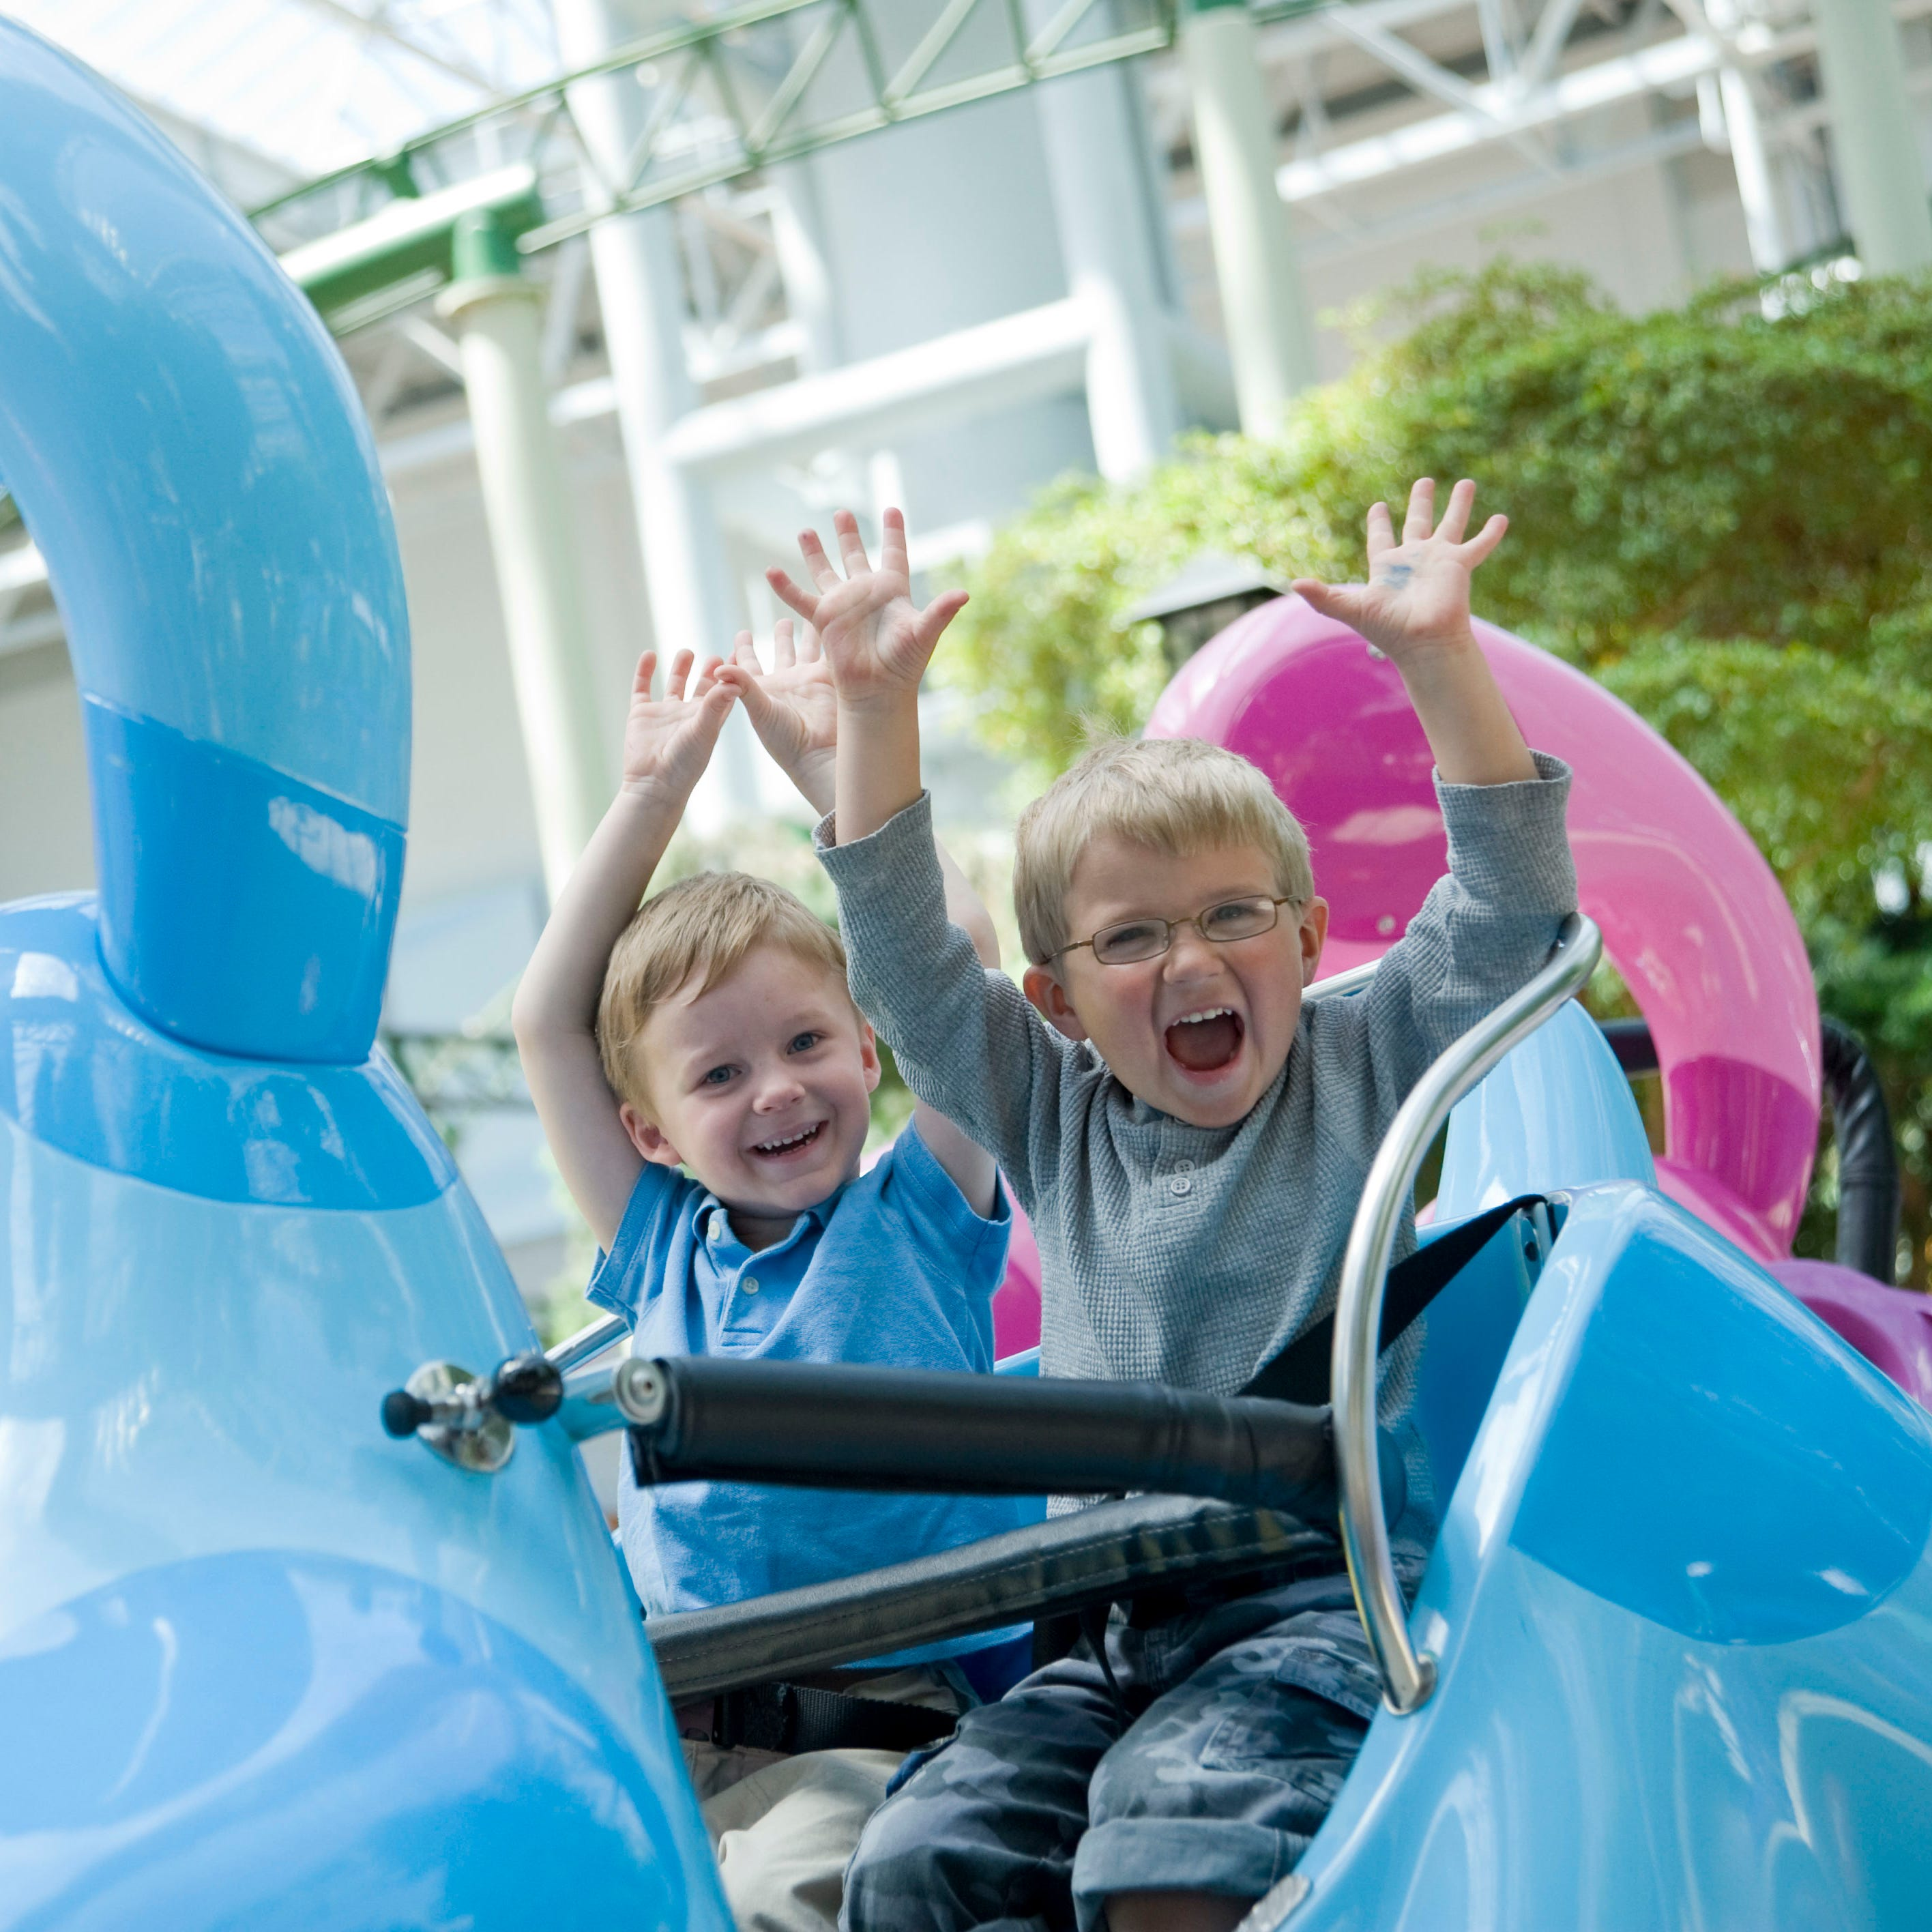 Mall of America's amusement park becomes Minnesota's first certified autism center